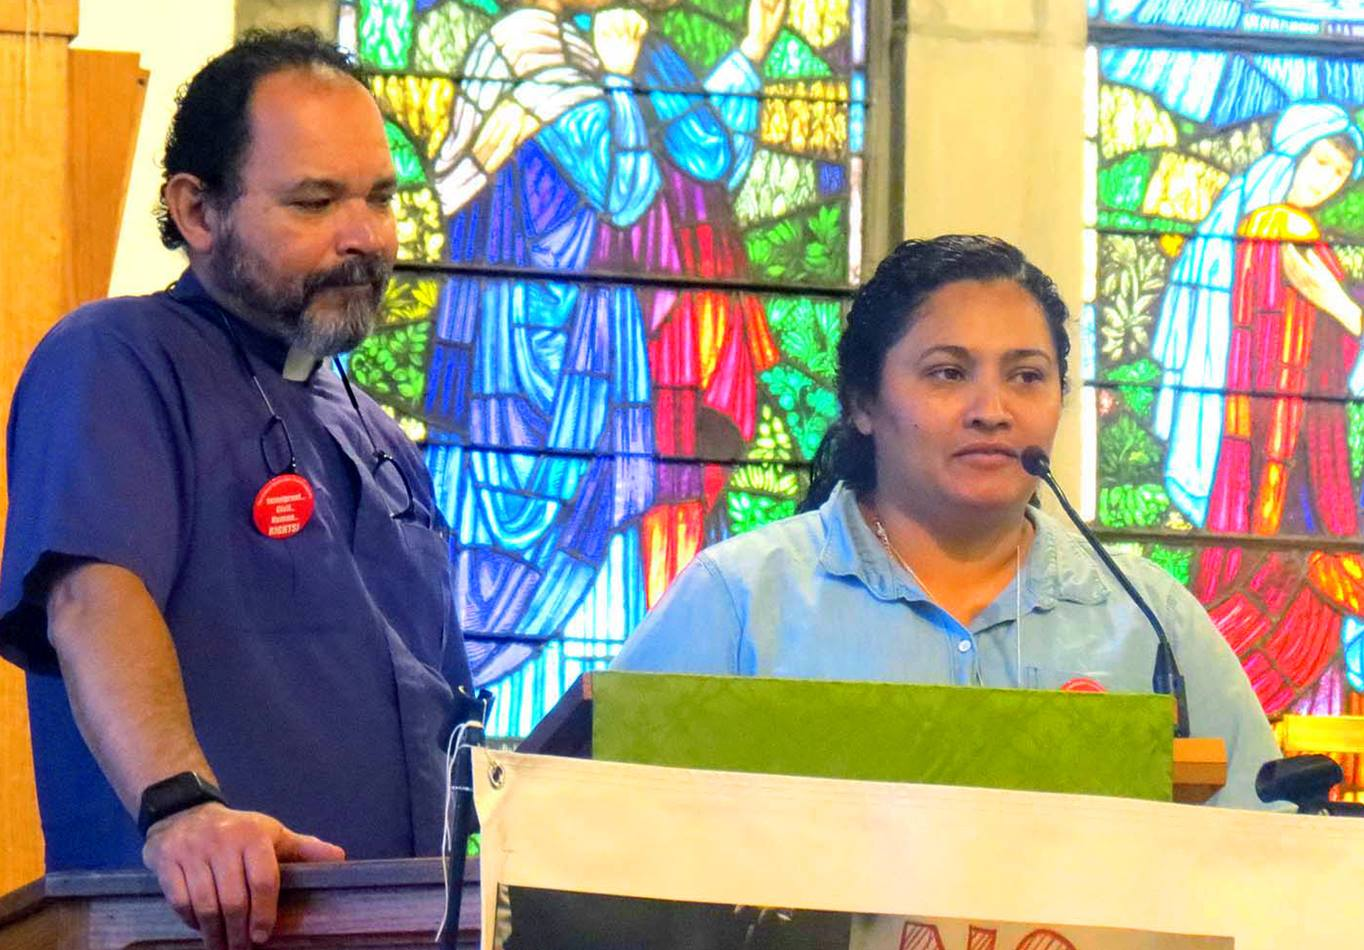 Maria Larios shares the story of her journey from Honduras to the United States some twenty-five years ago – with the help of translator, Rev. Enrique Lebron – during the New York Conference's Immigration Vigil and Forum. Larios, who has gained her U.S. citizenship, now assists with the Hispanic ministries at the Hicksville United Methodist Church.